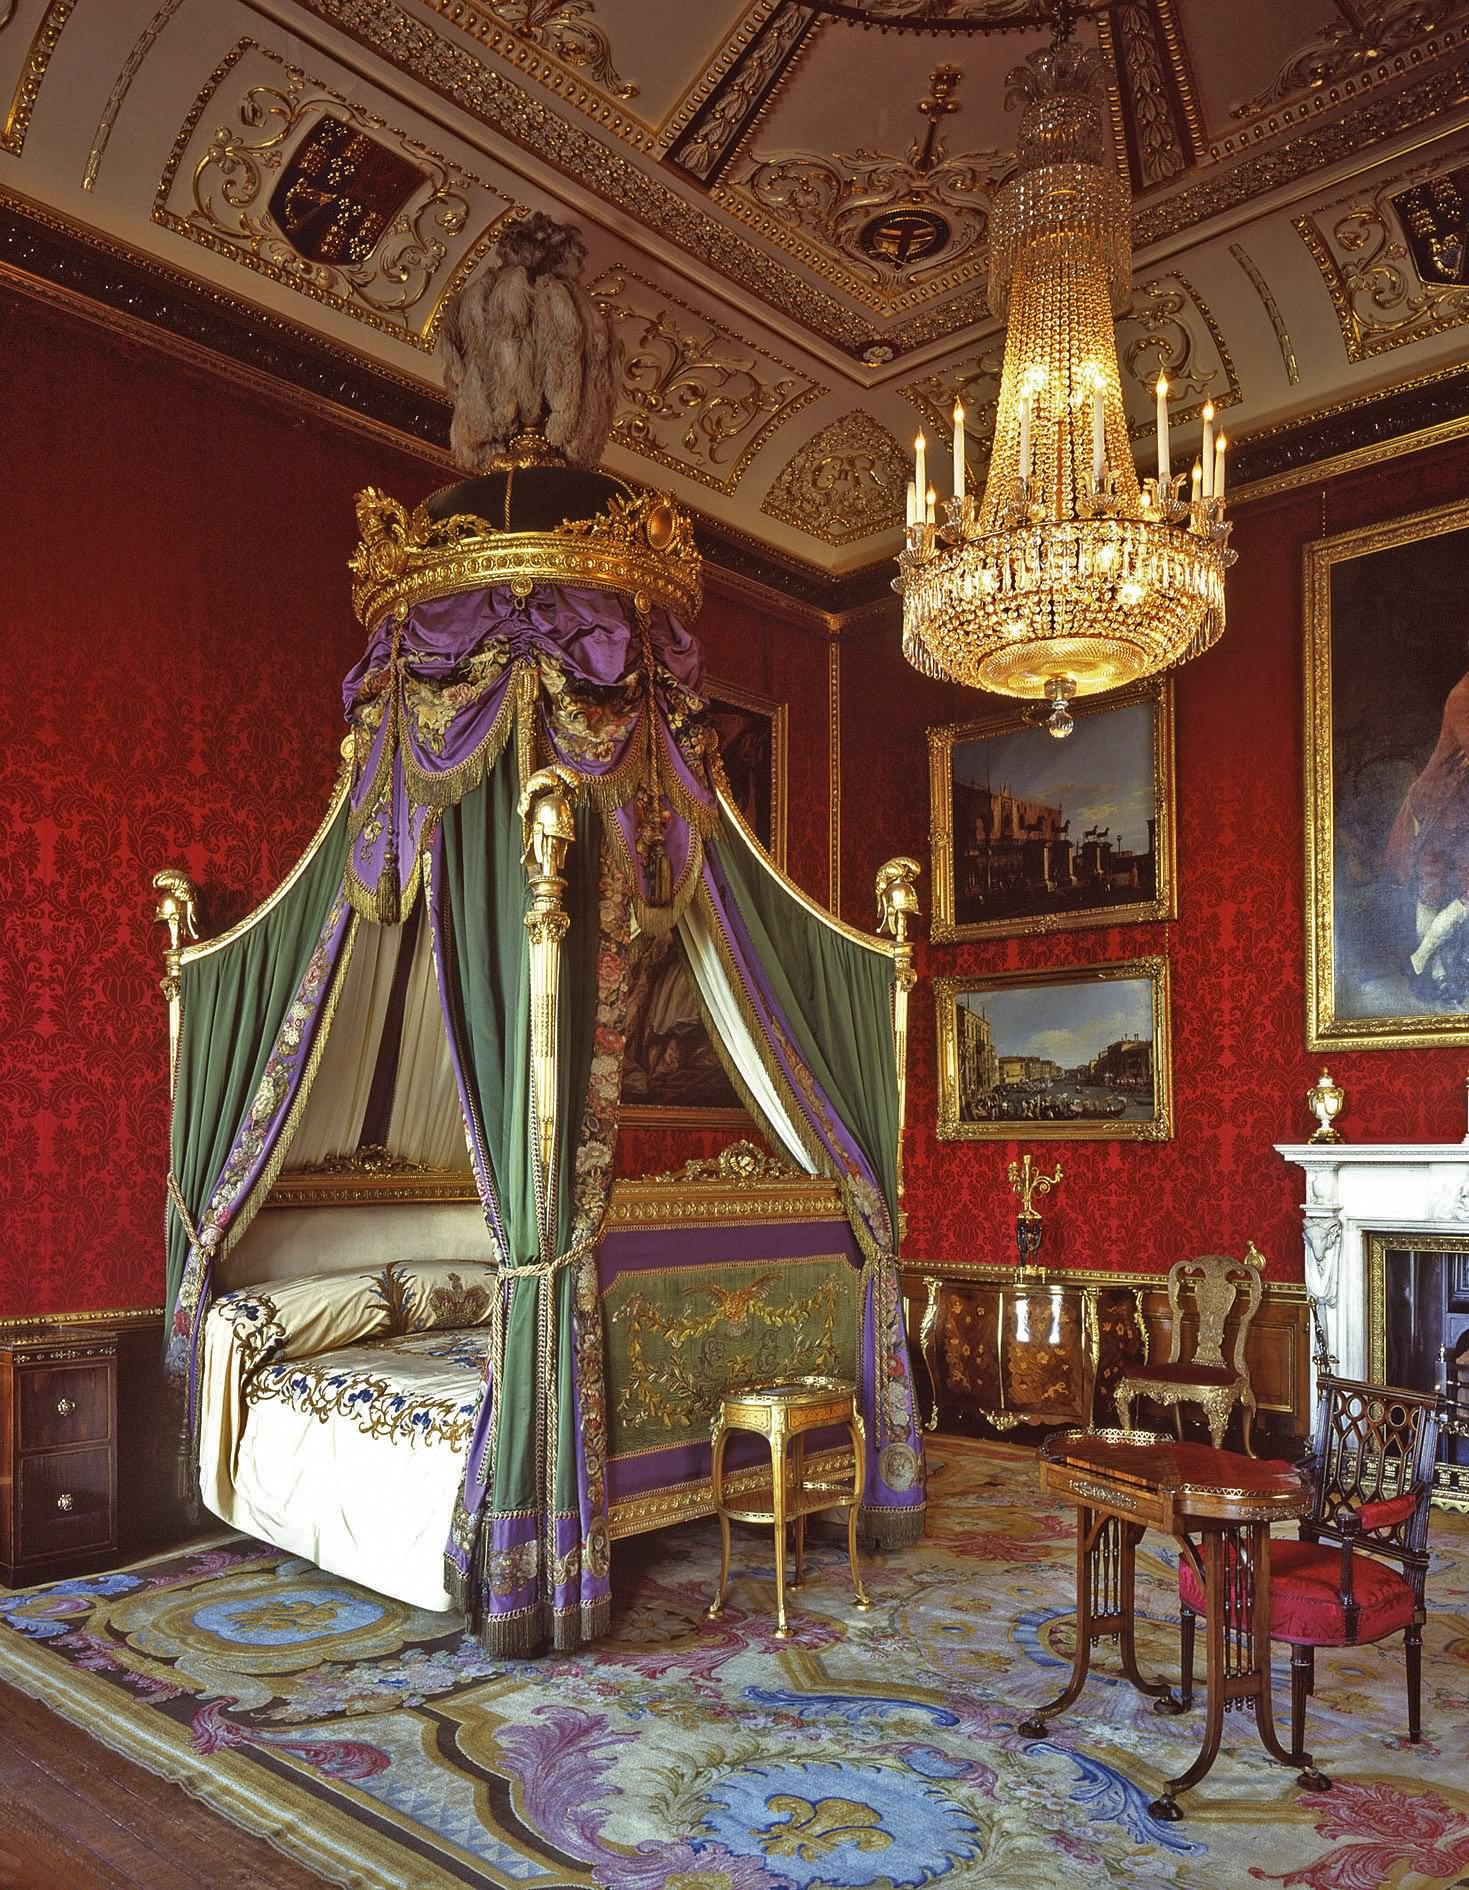 Buckingham palace queen bedroom and palaces on pinterest - Buckingham Palace Interior Www Galleryhip Com The